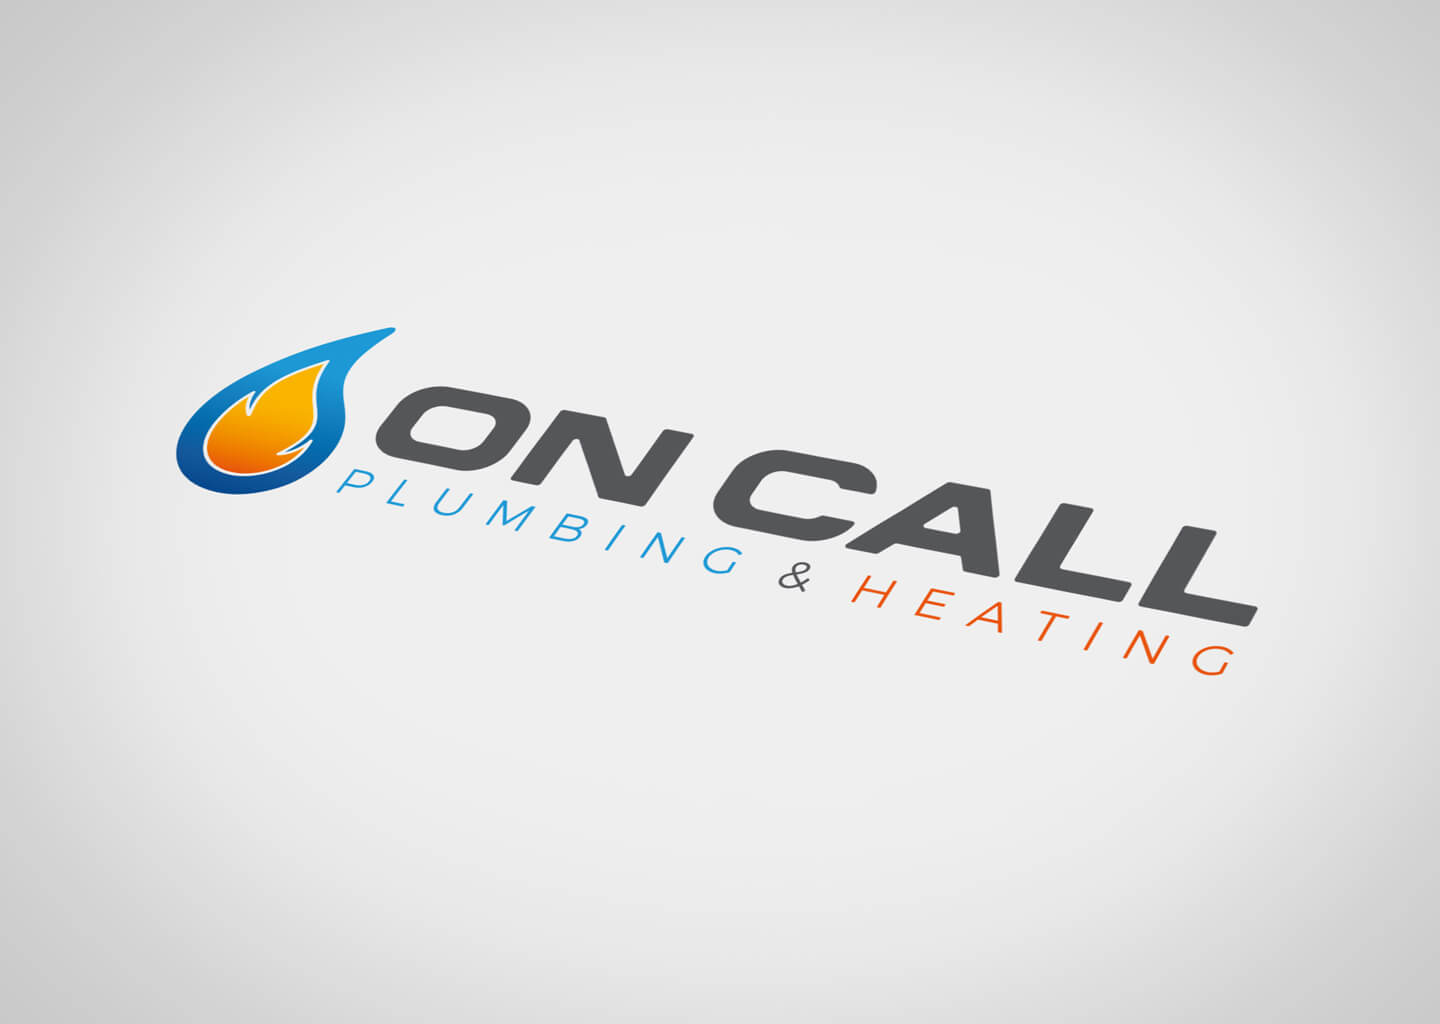 On Call rebrand logo